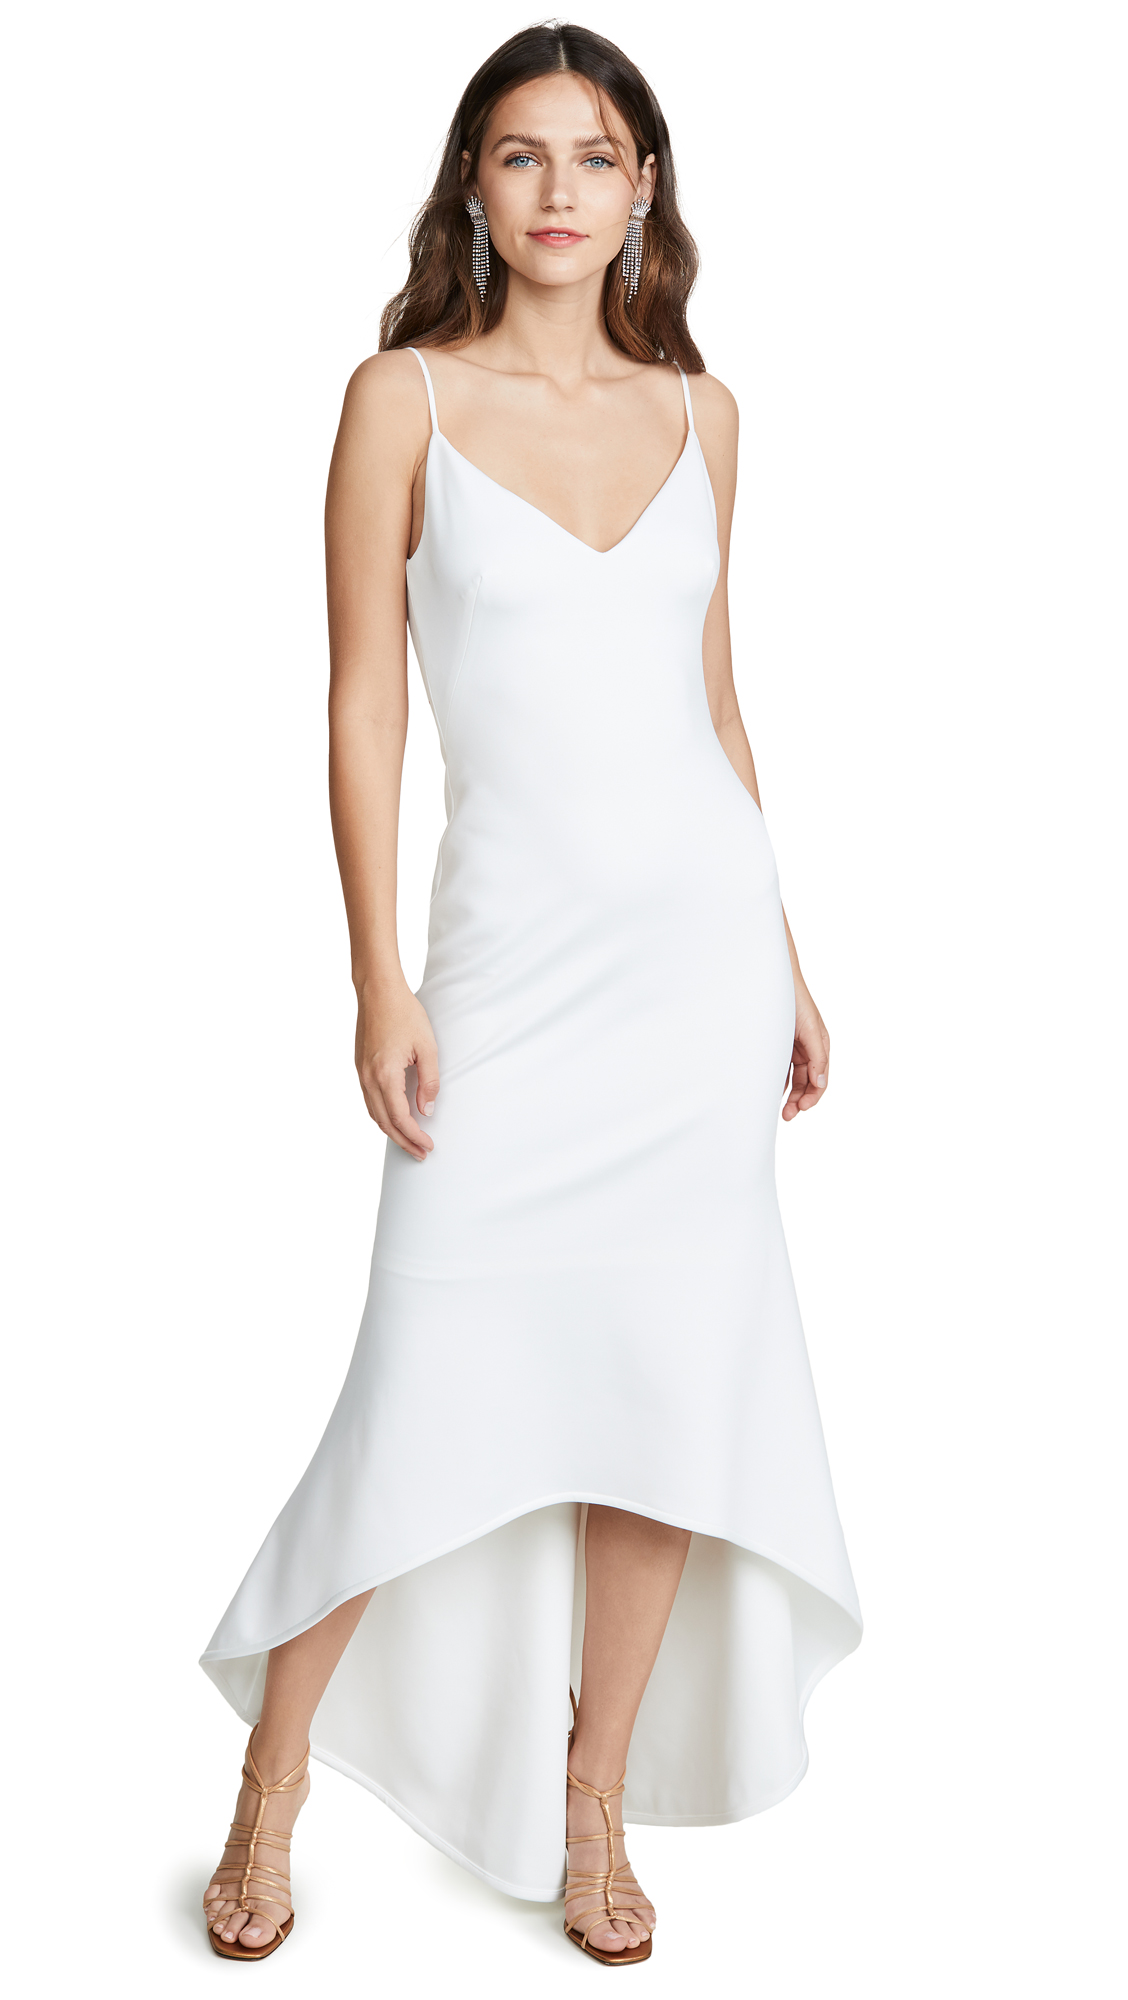 Black Halo Aremelle Gown - Whip Cream